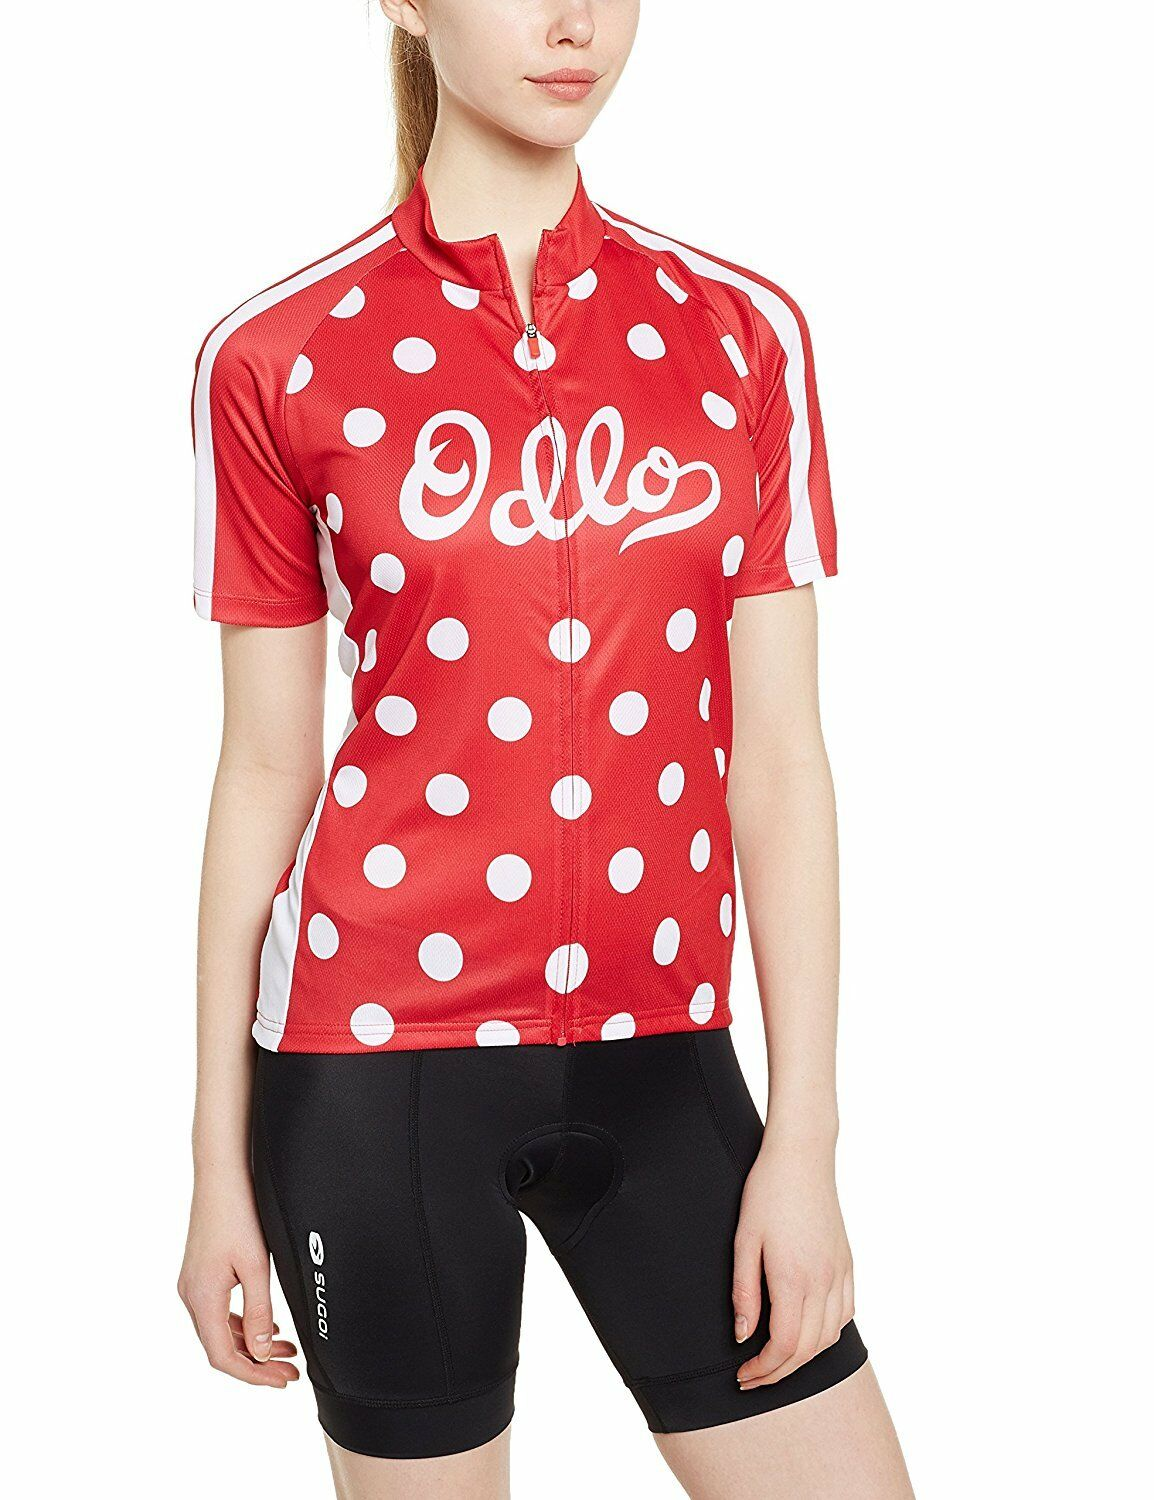 Odlo Mujer ciclismo Camiseta [Talla M L XL ] Stand-Up Collar